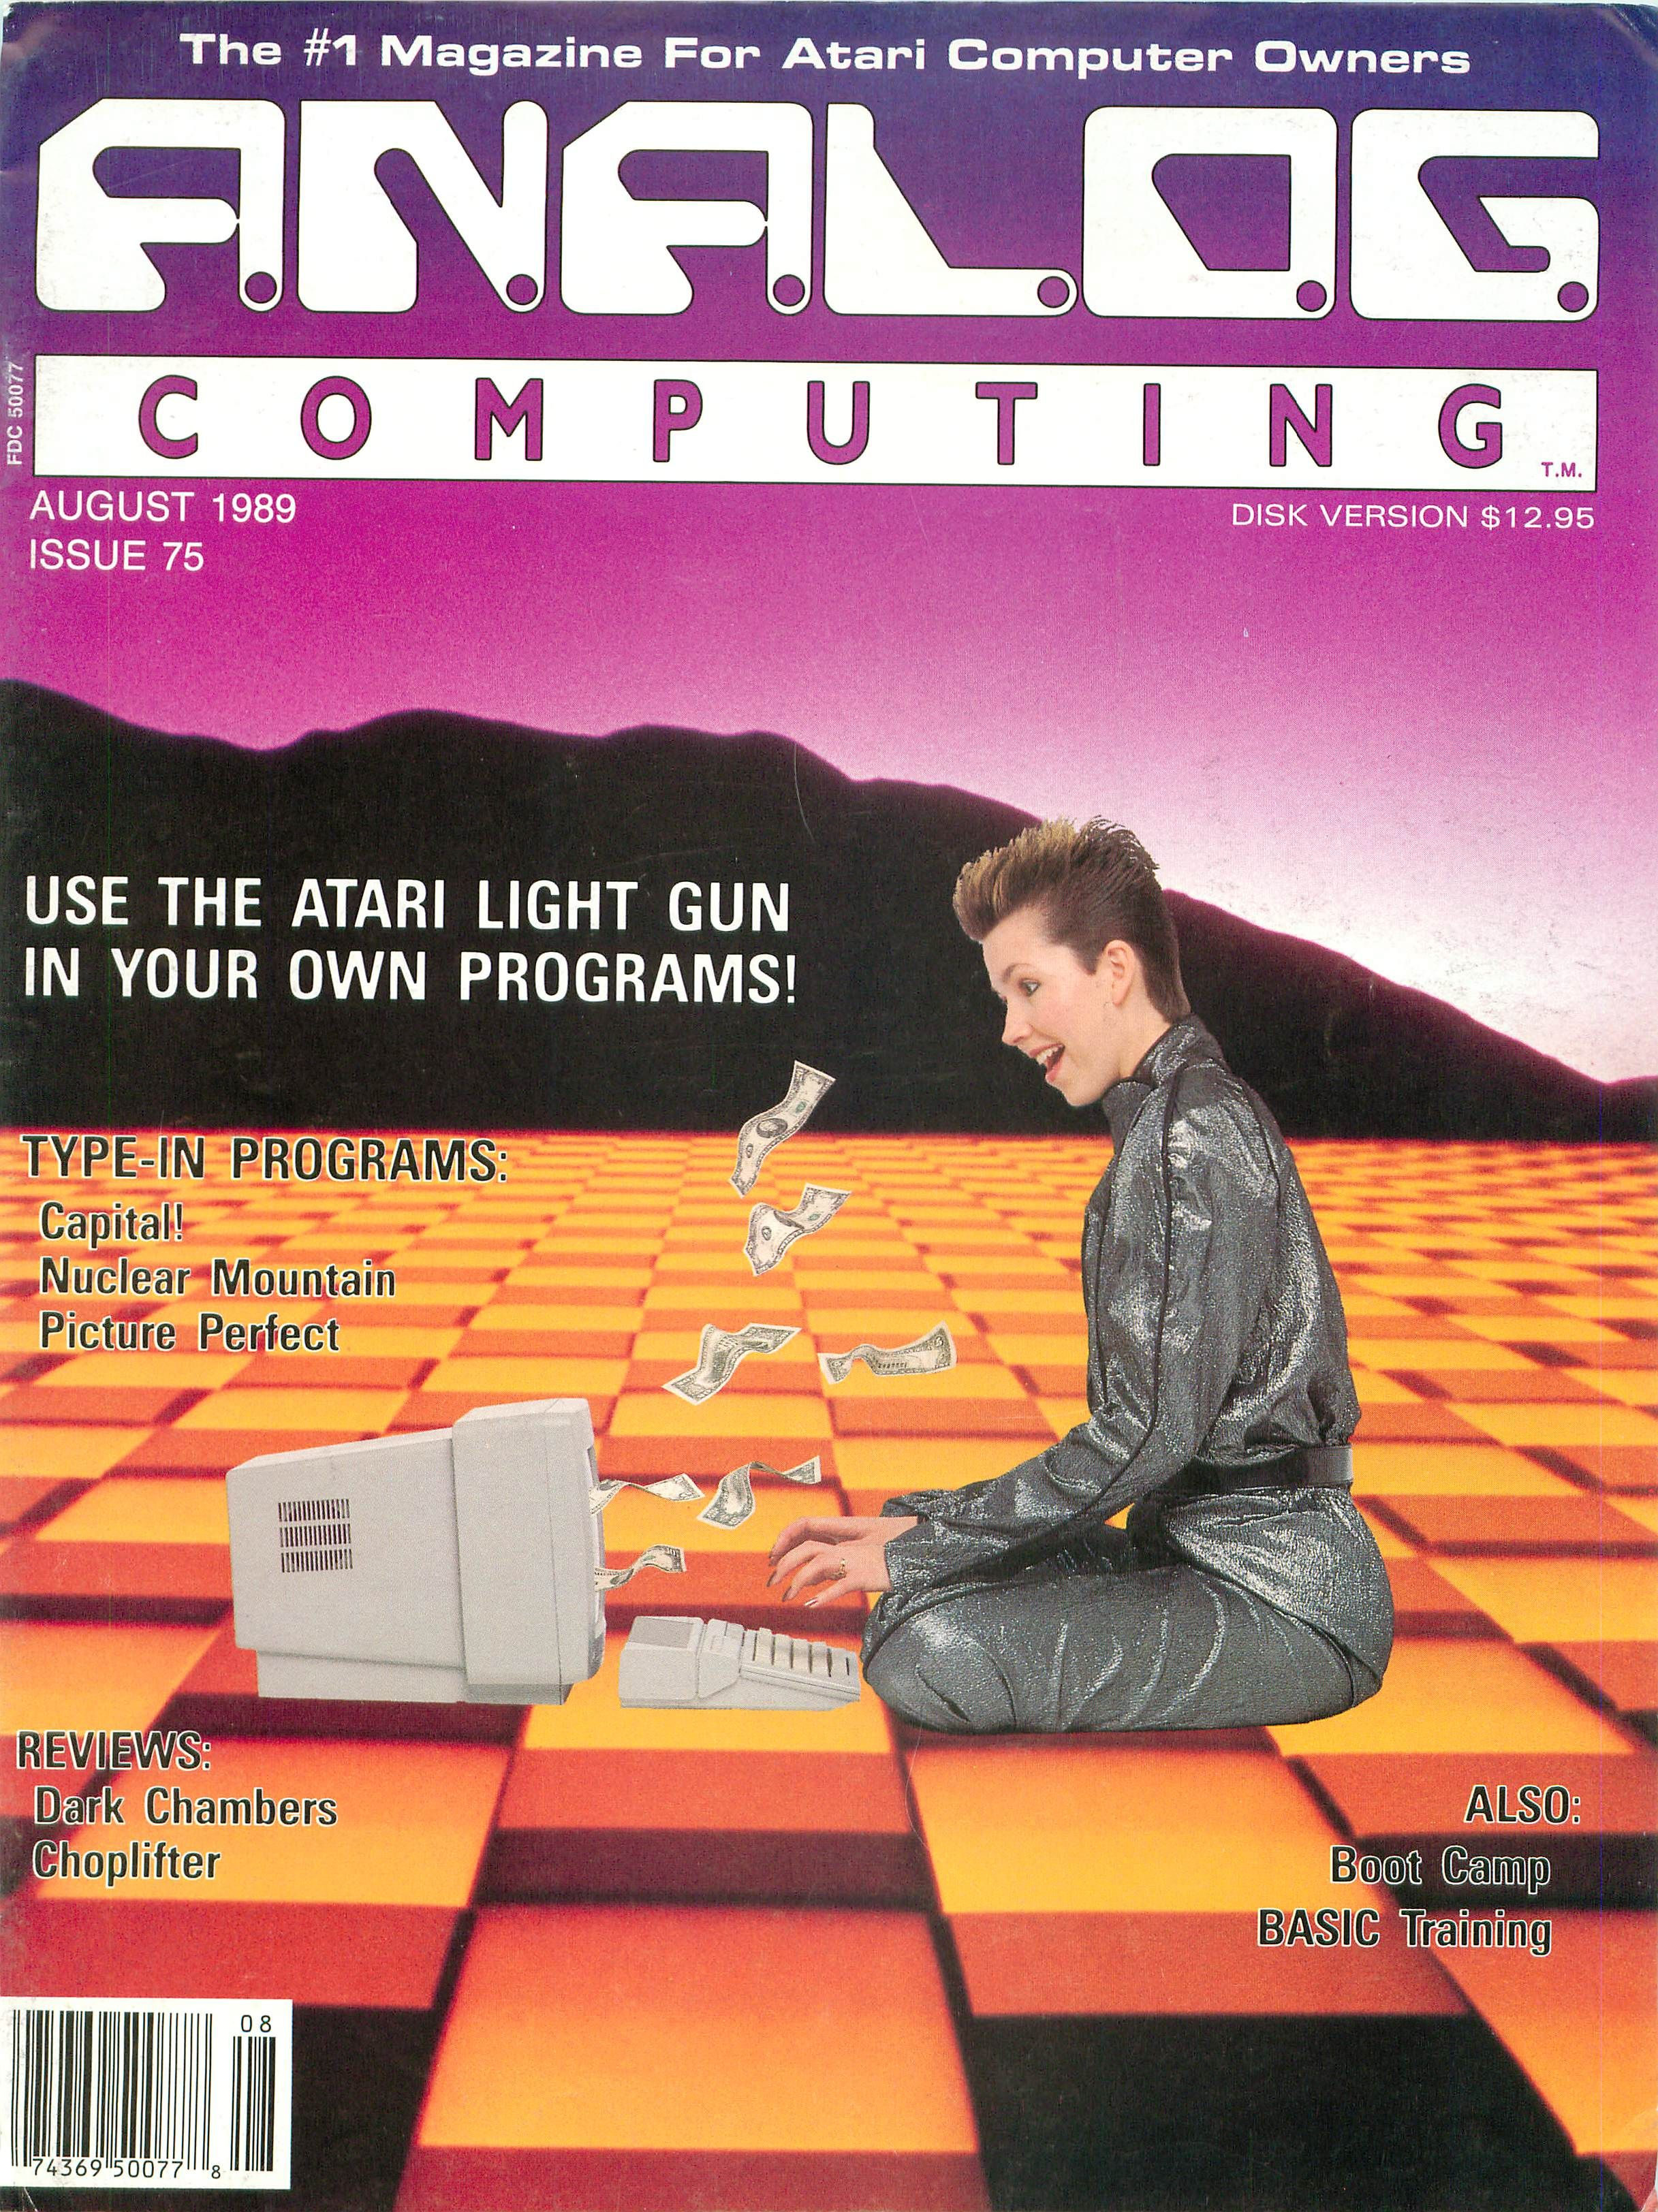 A.N.A.L.O.G. Computing, Issue Number 75, August 1989 - #Atari #Atari400 #Atari800 #Atari800XL #Atari65XE #Atari130XE #80s #1980s #1989 - http://www.megalextoria.com/magazines/index.php?twg_album=Computer_Magazines%2FANALOG_Computing%2Fanalog_1989-08_show=Analog+Computing+75+1989-08+Use+Atari+Lightgun+in+your+Programs-01.jpg